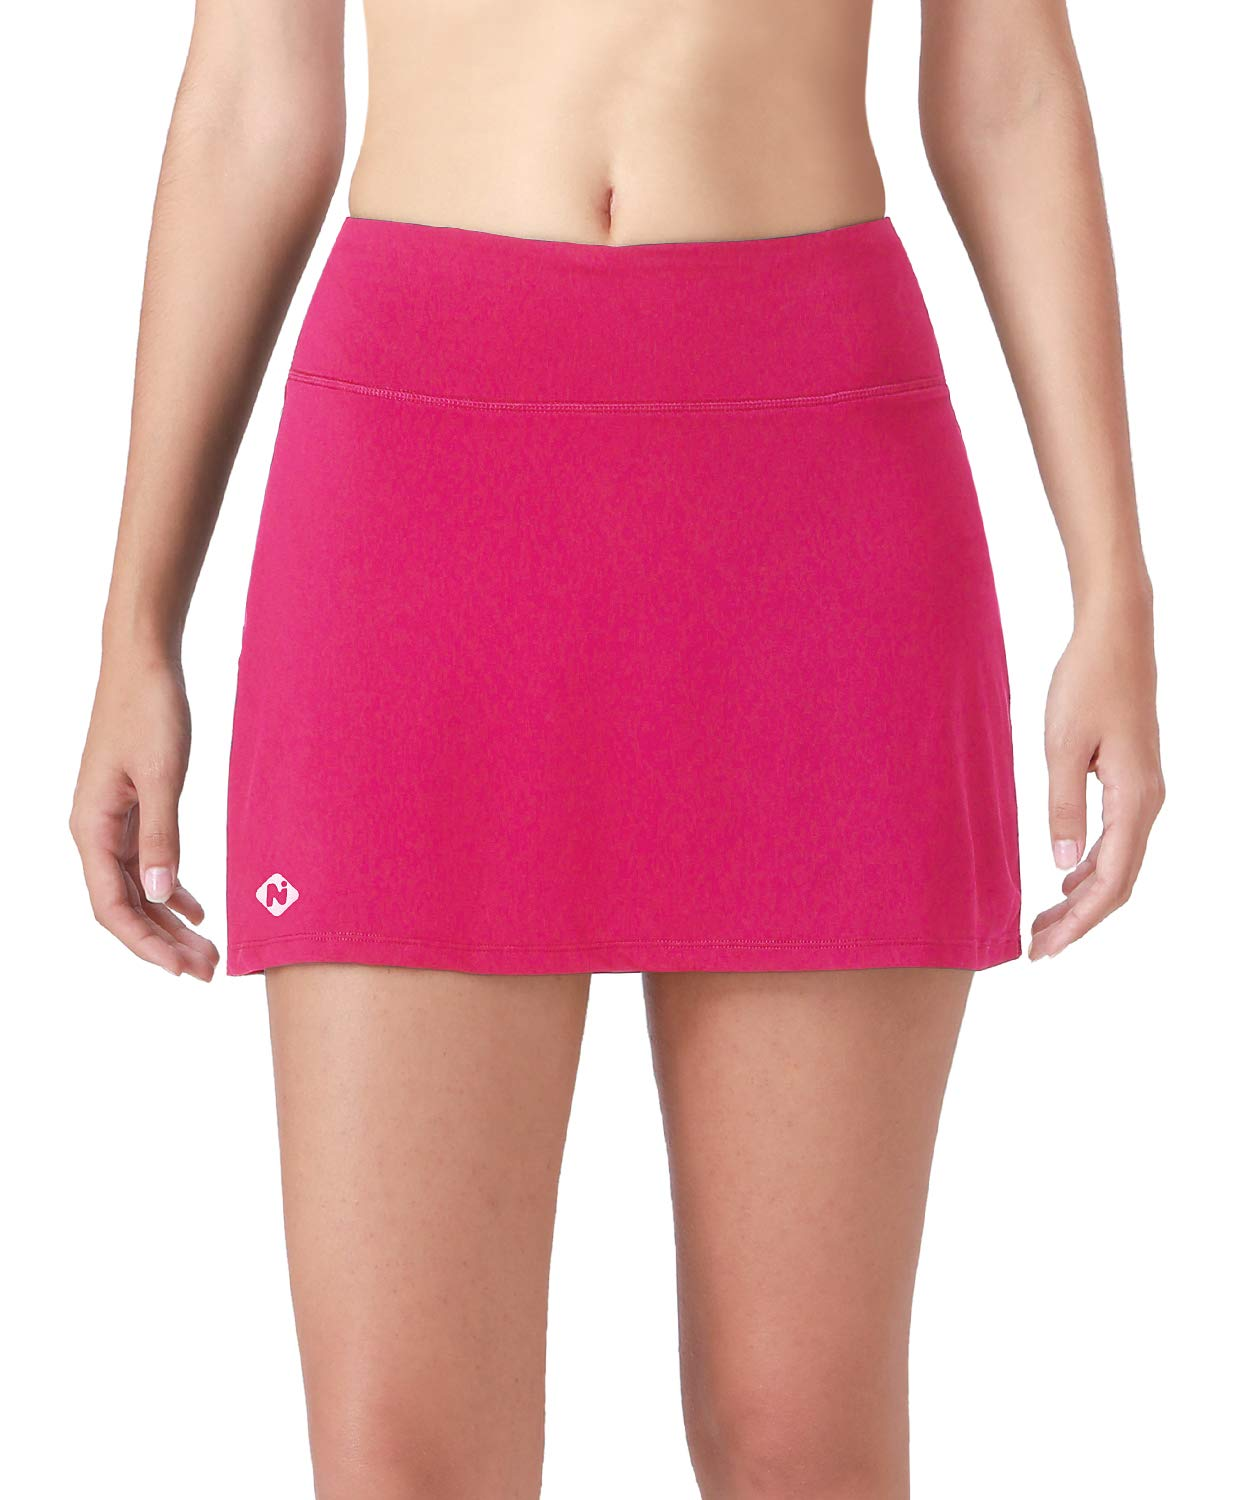 Naviskin Women's Active Athletic Skort Lightweight Skirt with Pockets Inner Shorts Perfect for Running Golf Tennis Workout Casual Use Rose Red Size M by Naviskin